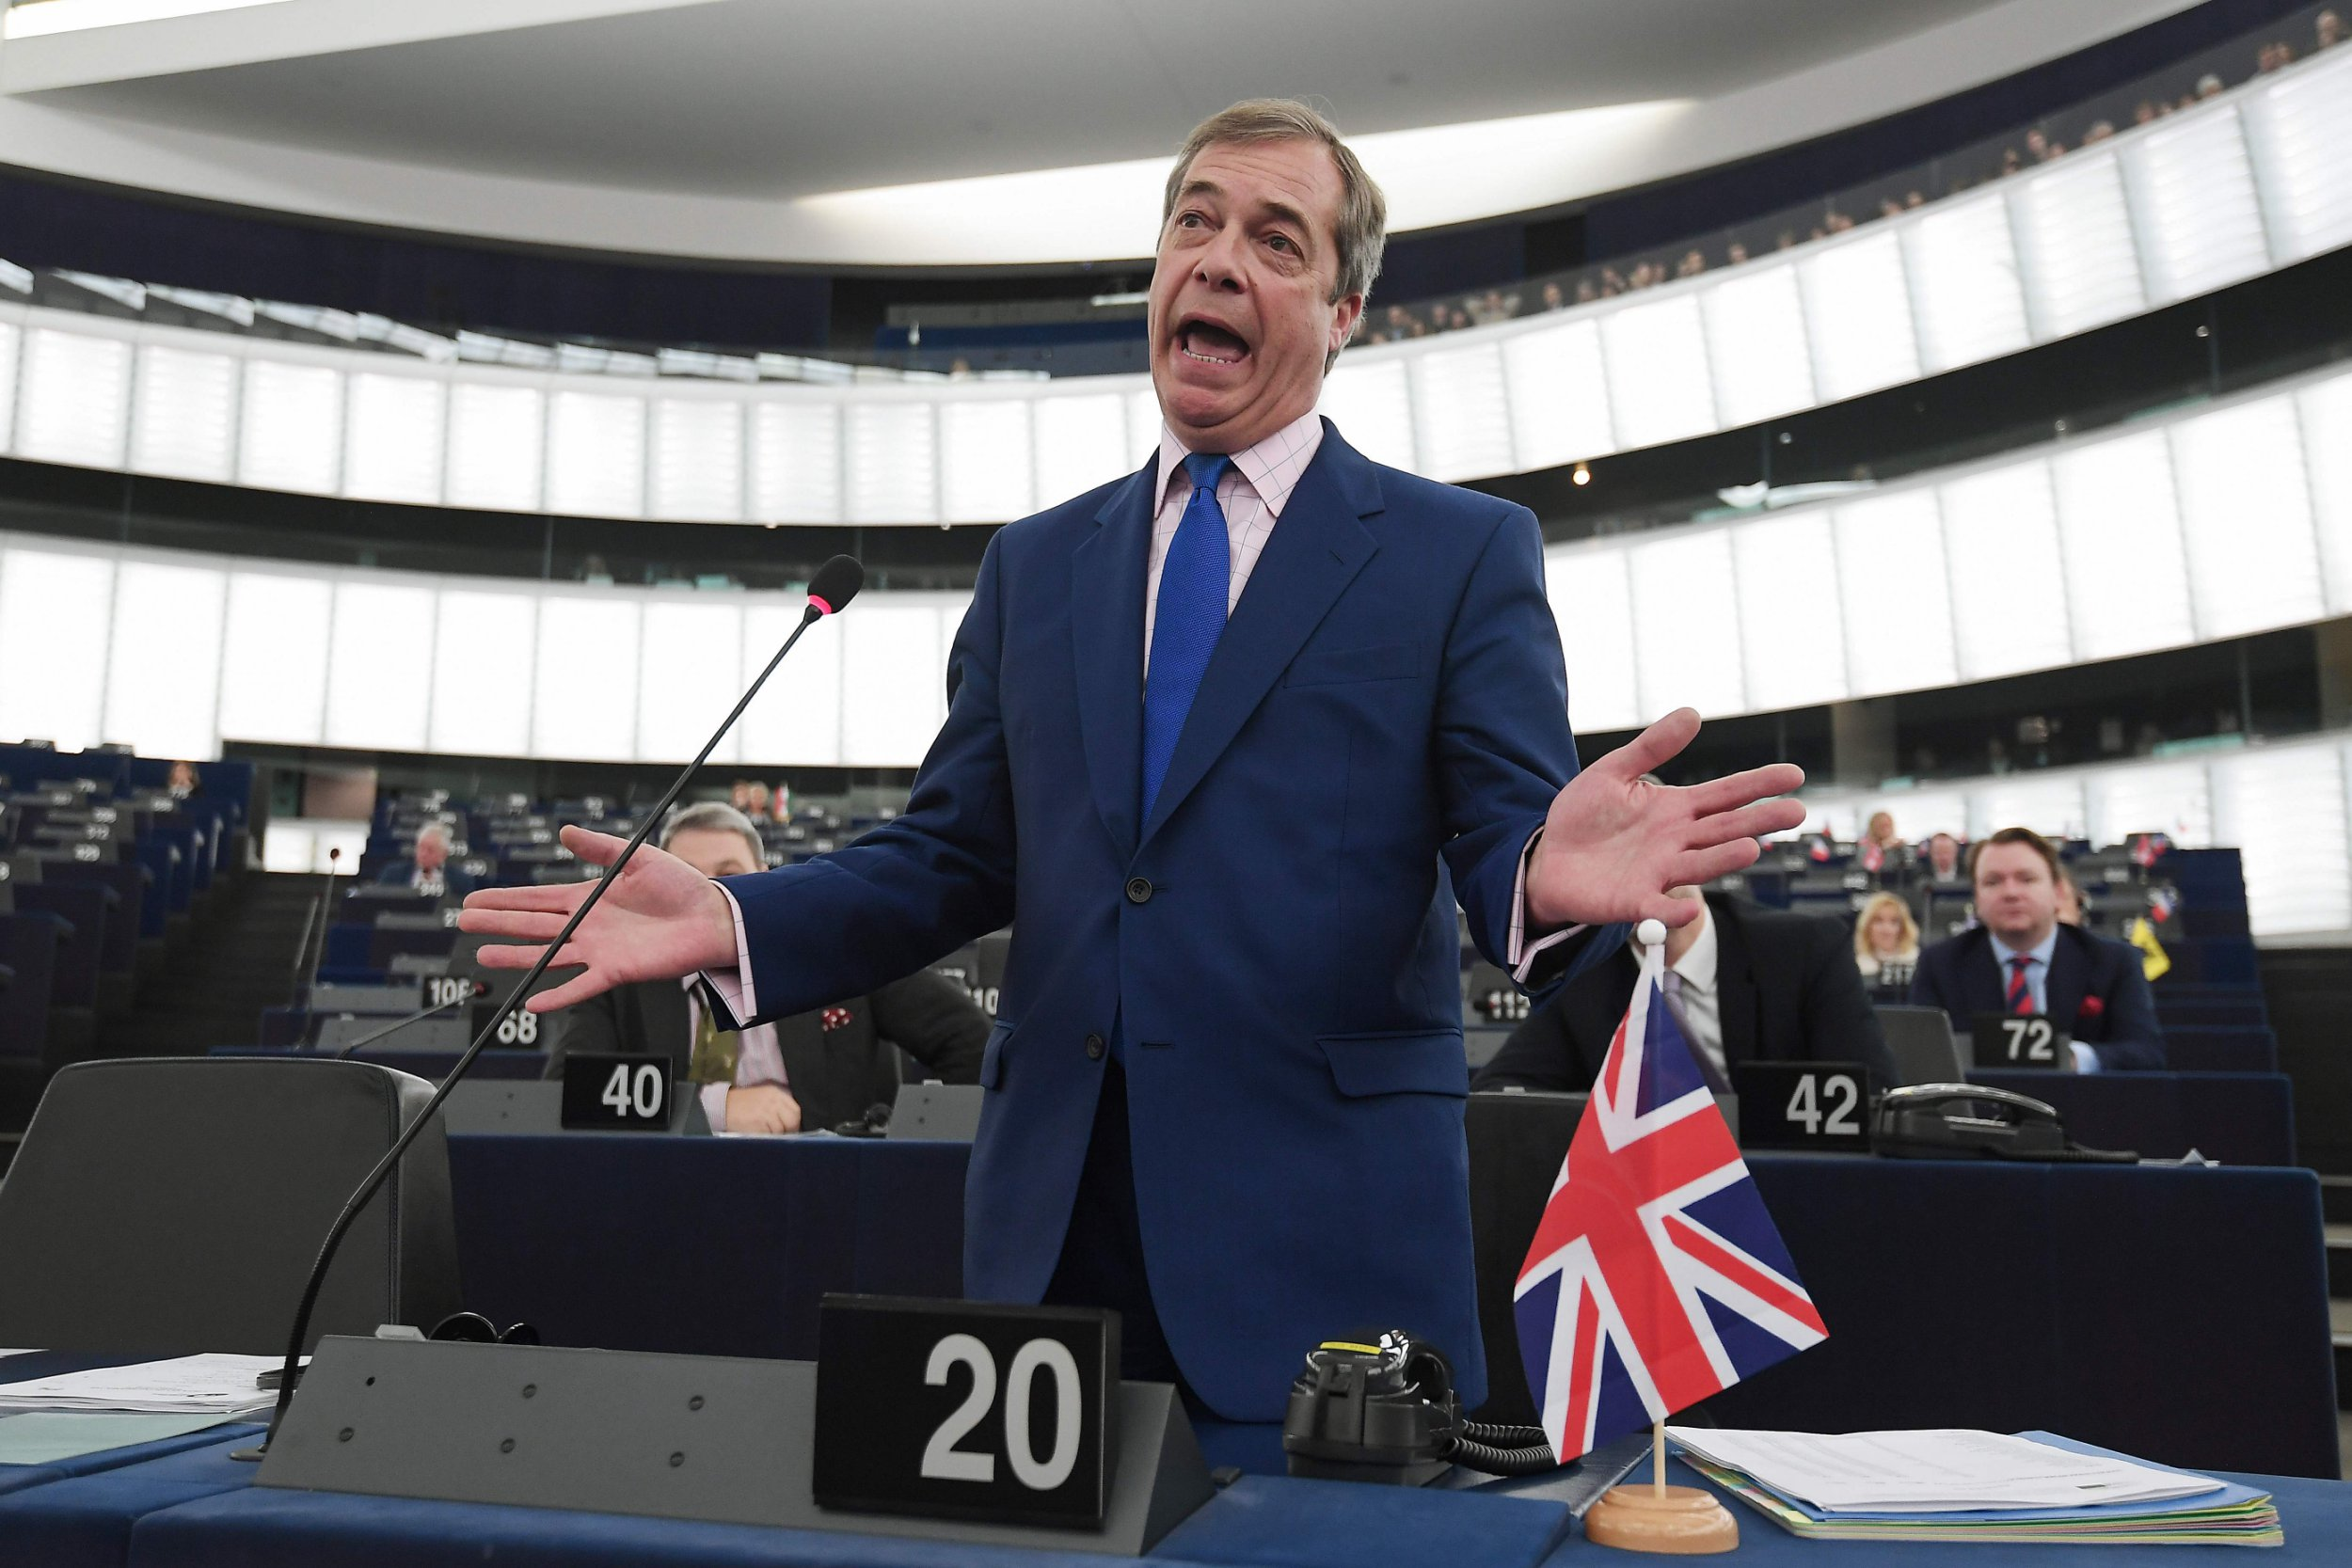 """TOPSHOT - Former UK Independence Party (UKIP) leader, Brexit campaigner and member of the European Parliament Nigel Farage gestures as he speaks during a debate on the preparation of the upcoming European Council meeting of March 21 and 22 and UKs withdrawal from the EU during a plenary session at the European Parliament on March 13, 2019 in Strasbourg, eastern France. - The European Union will have to hear from Britain how it plans to deliver a divorce deal agreement before deciding whether to delay Brexit, negotiator Michel Barnier said on March 13. """"The United Kingdom must tell us what its choice is, the clear line we're waiting for, before we even decide on an eventual extension,"""" Barnier told members of the European Parliament. (Photo by FREDERICK FLORIN / AFP)FREDERICK FLORIN/AFP/Getty Images"""